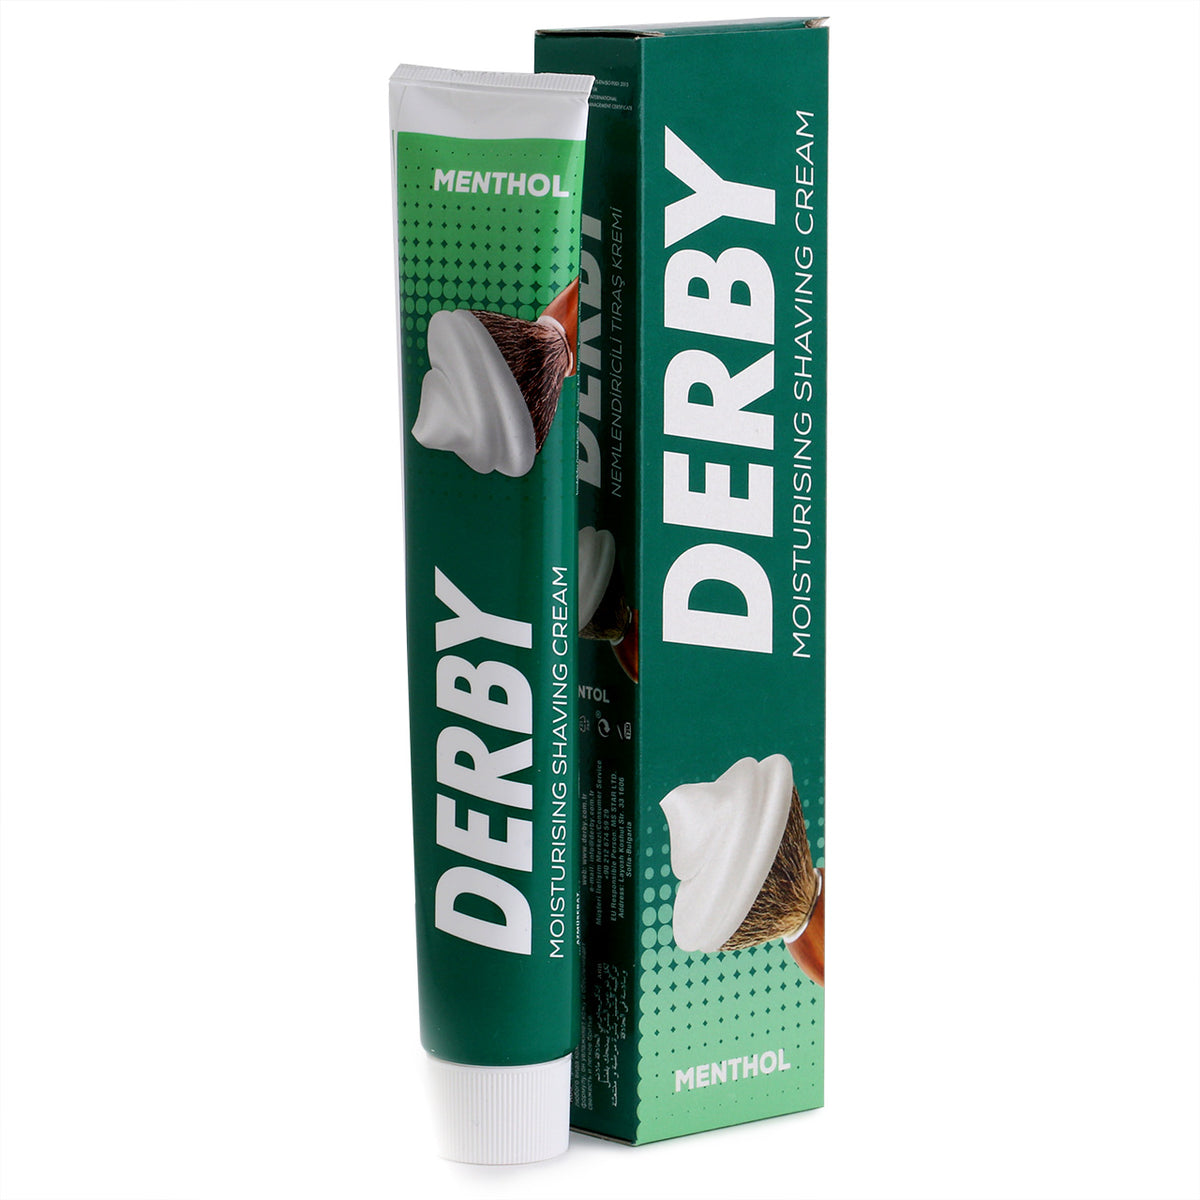 Derby Shaving Cream 100ml, Menthol